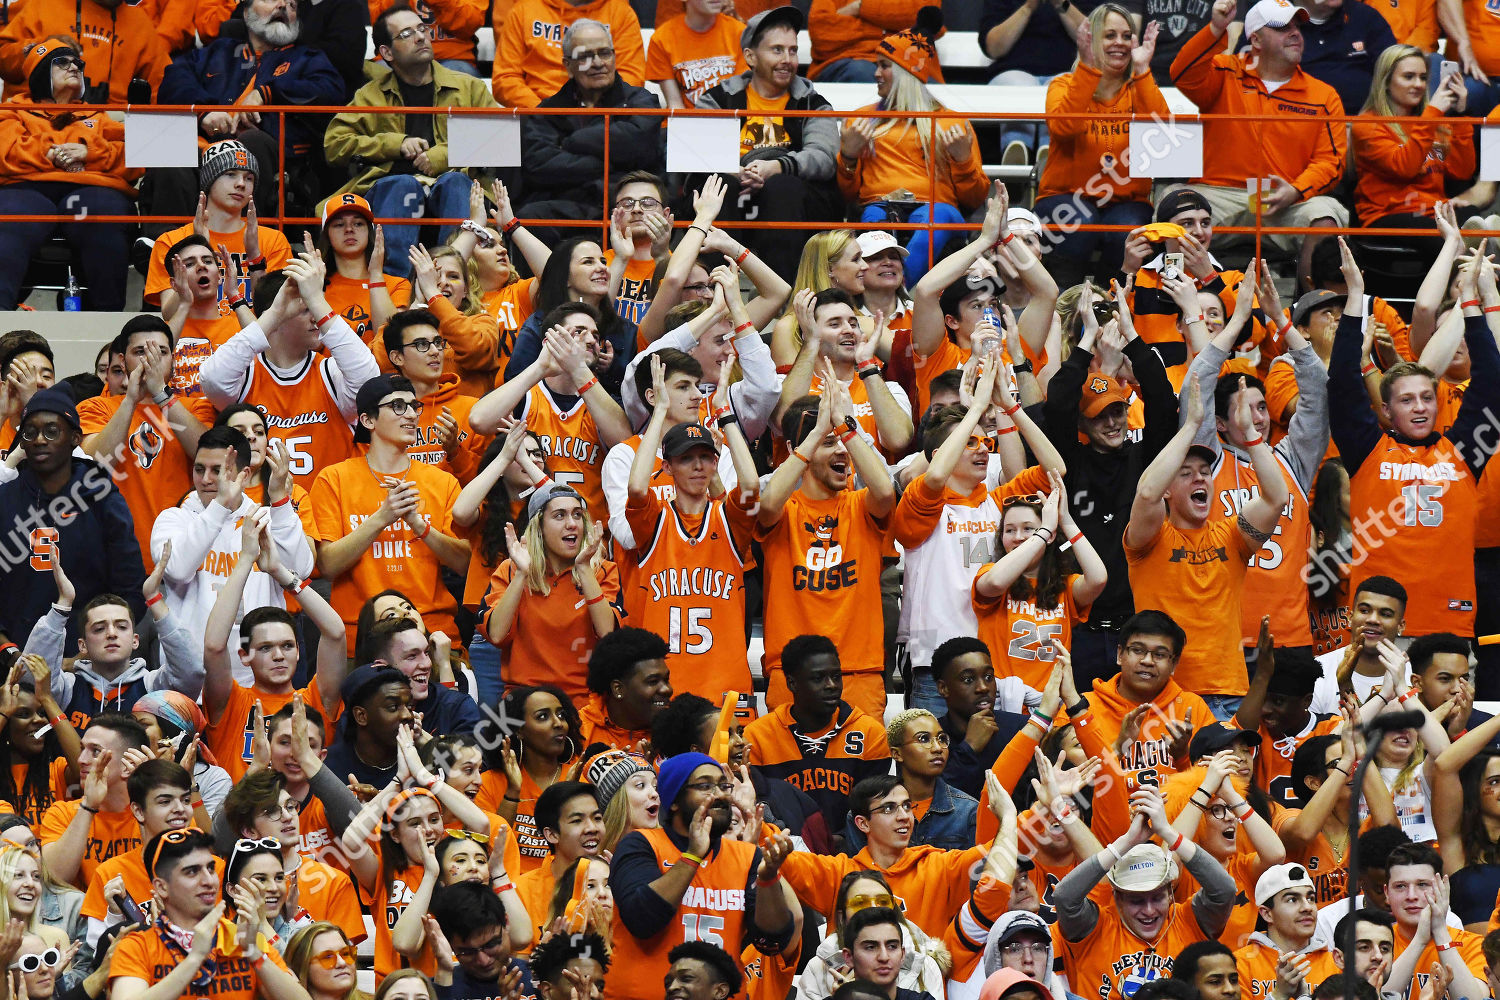 Syracuse Crowd 35642 Fans Makes Some Noise Editorial Stock